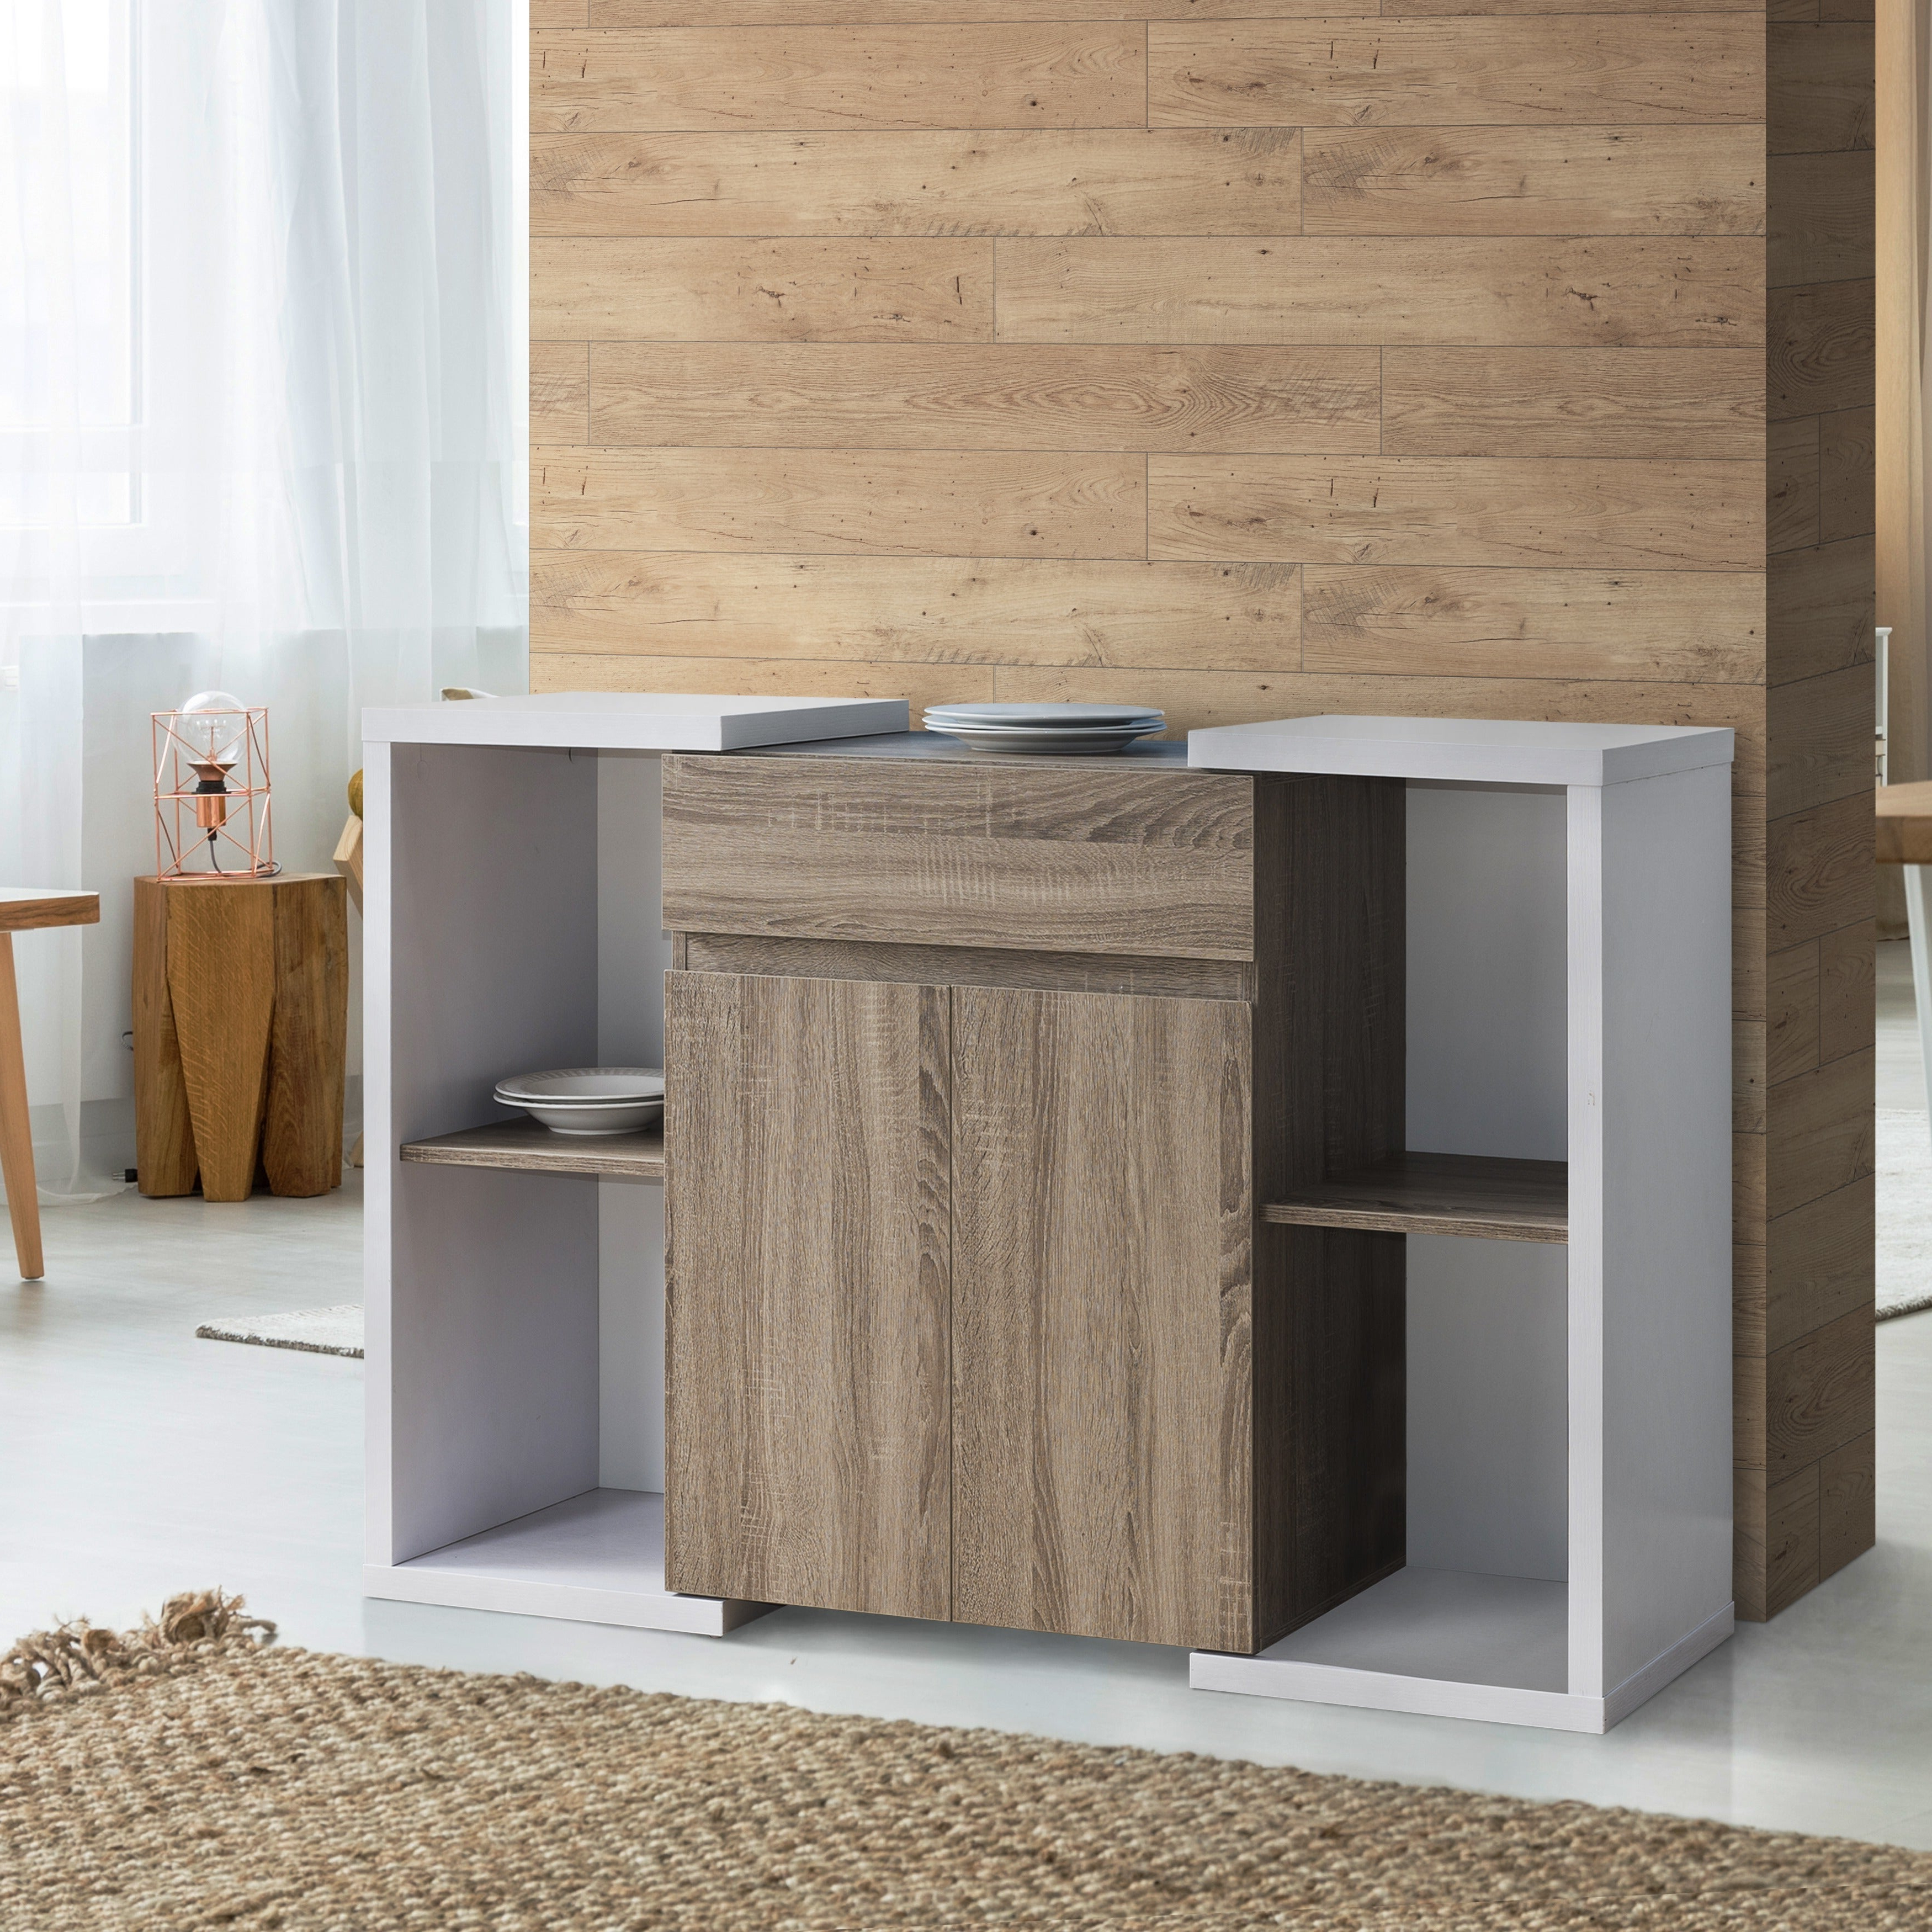 Togal Contemporary White/light Oak Dining Buffetfoa Throughout Togal Contemporary White/light Oak Dining Buffets (View 18 of 20)